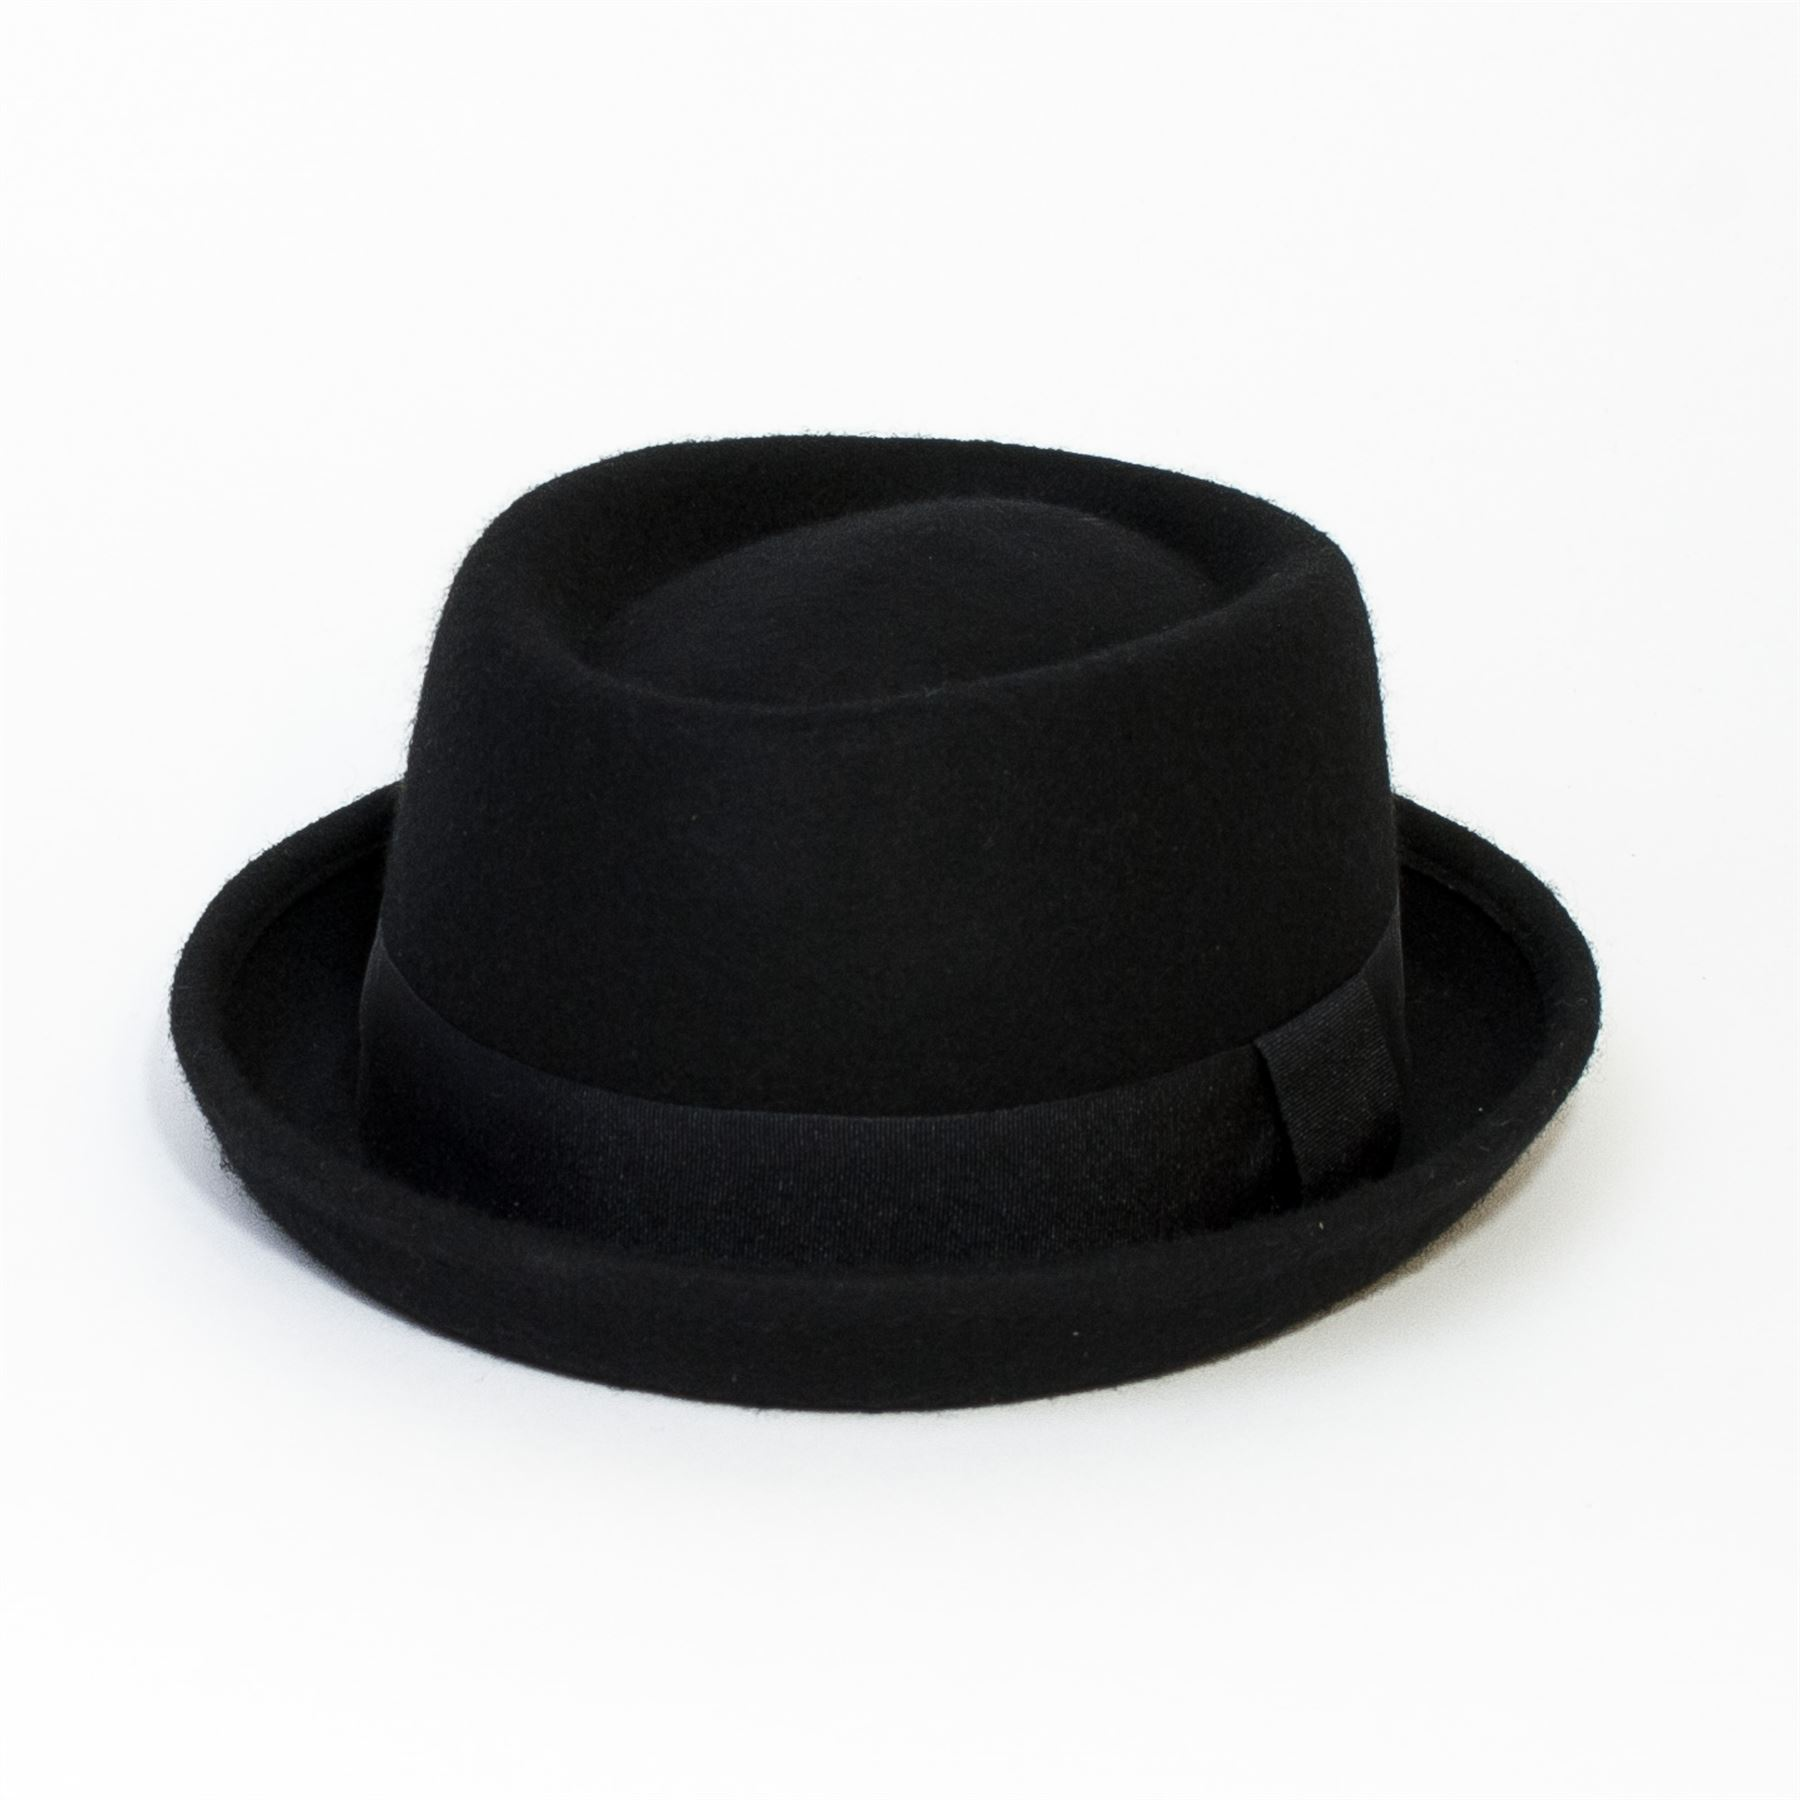 Find great deals on eBay for mens trilby fedora hat. Shop with confidence.